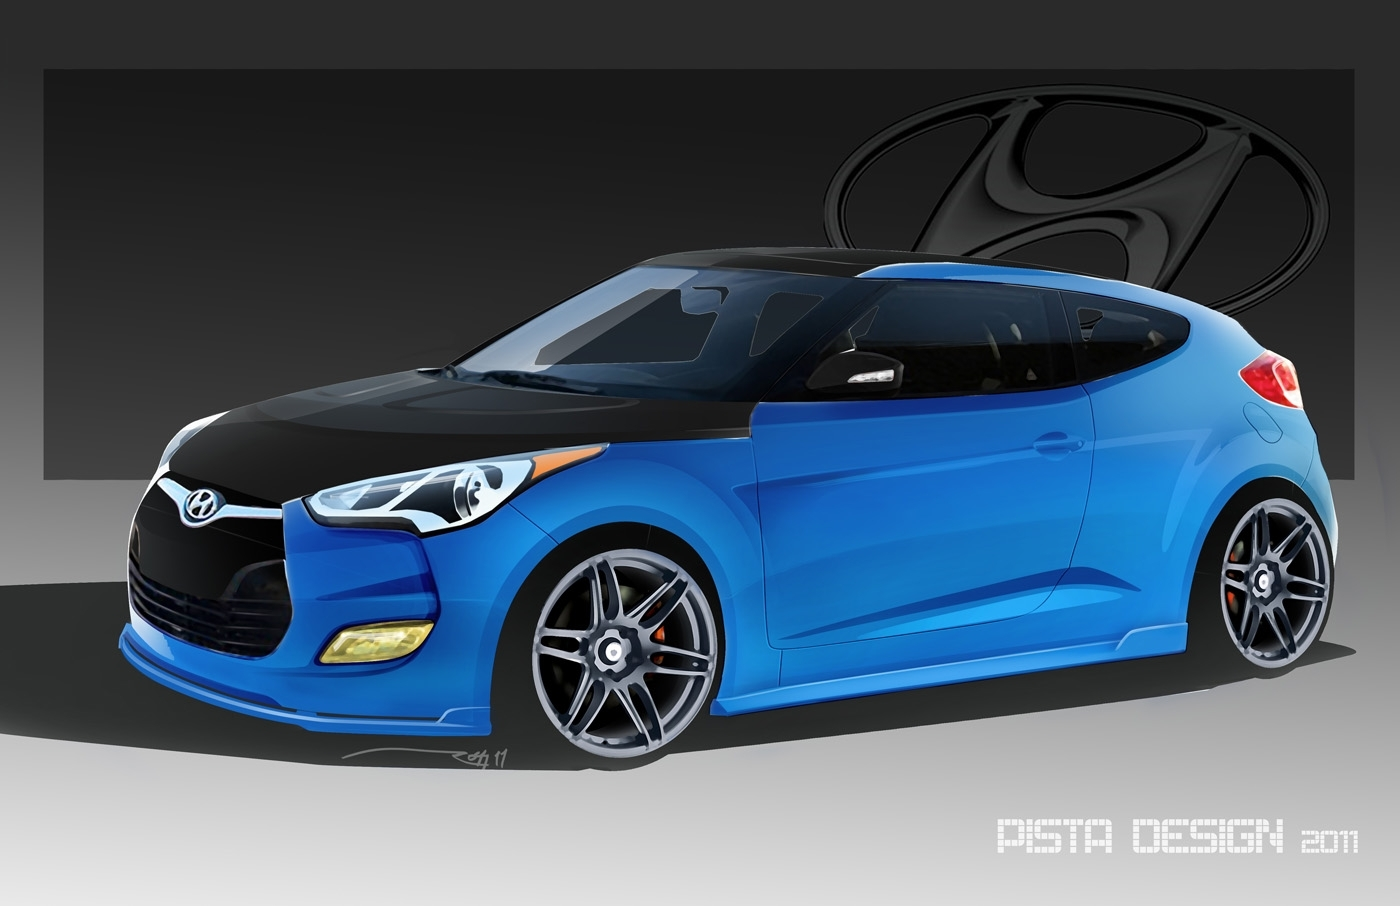 2019 Hyundai Elantra Blue photo - 5